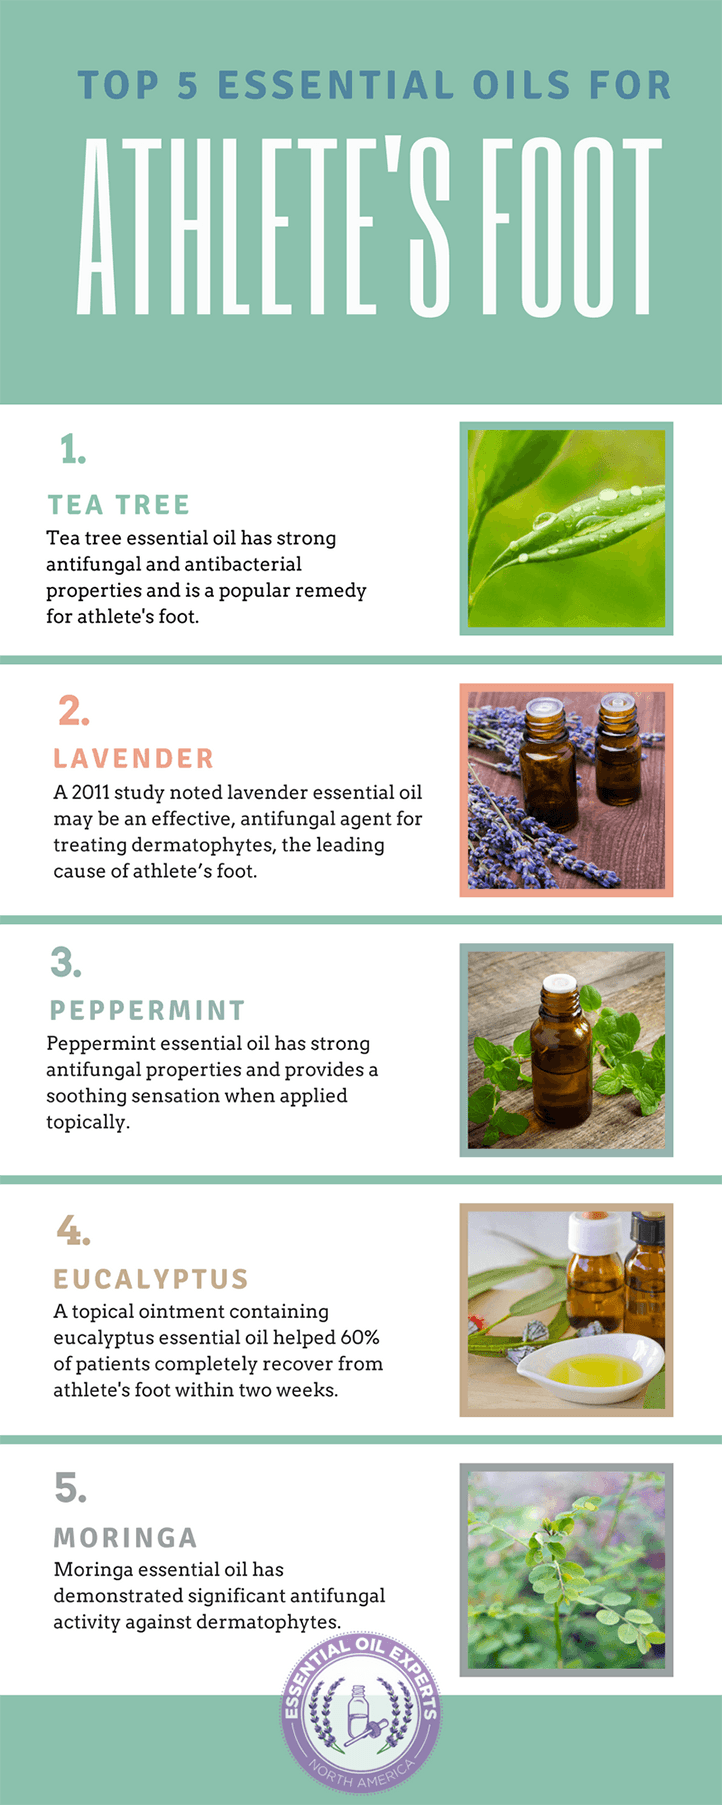 5 Essential Oils For Athlete's Foot - Cure and Home Remedies | EssentialOilExperts.com